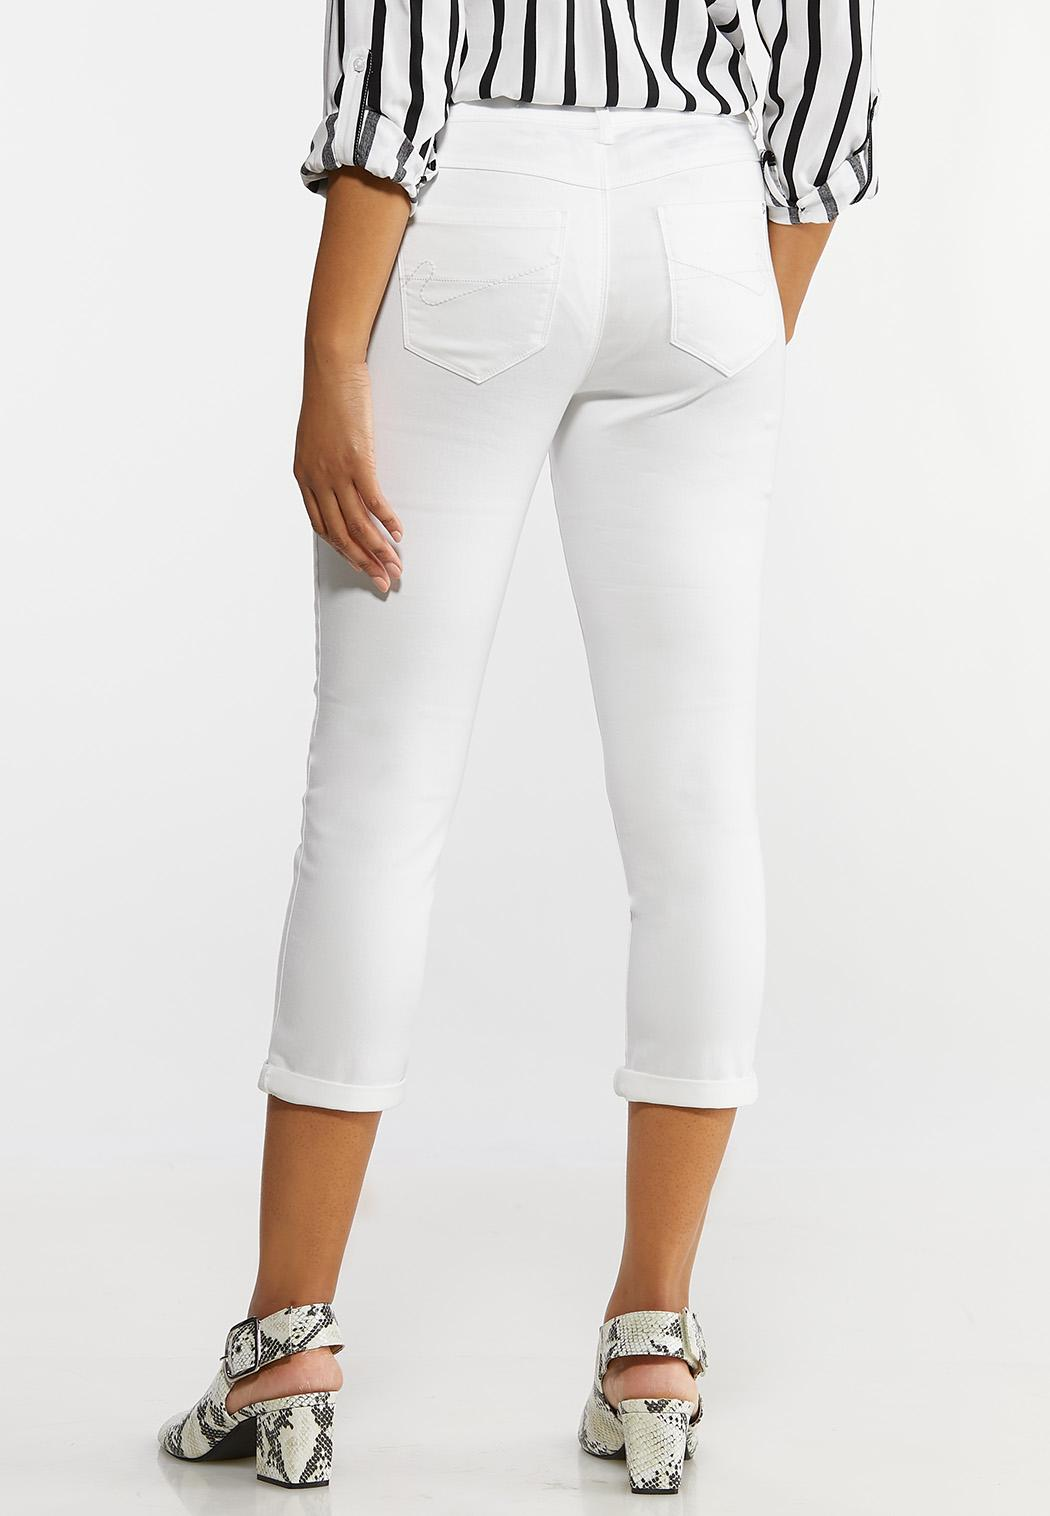 White Skinny Ankle Jeans (Item #44133163)